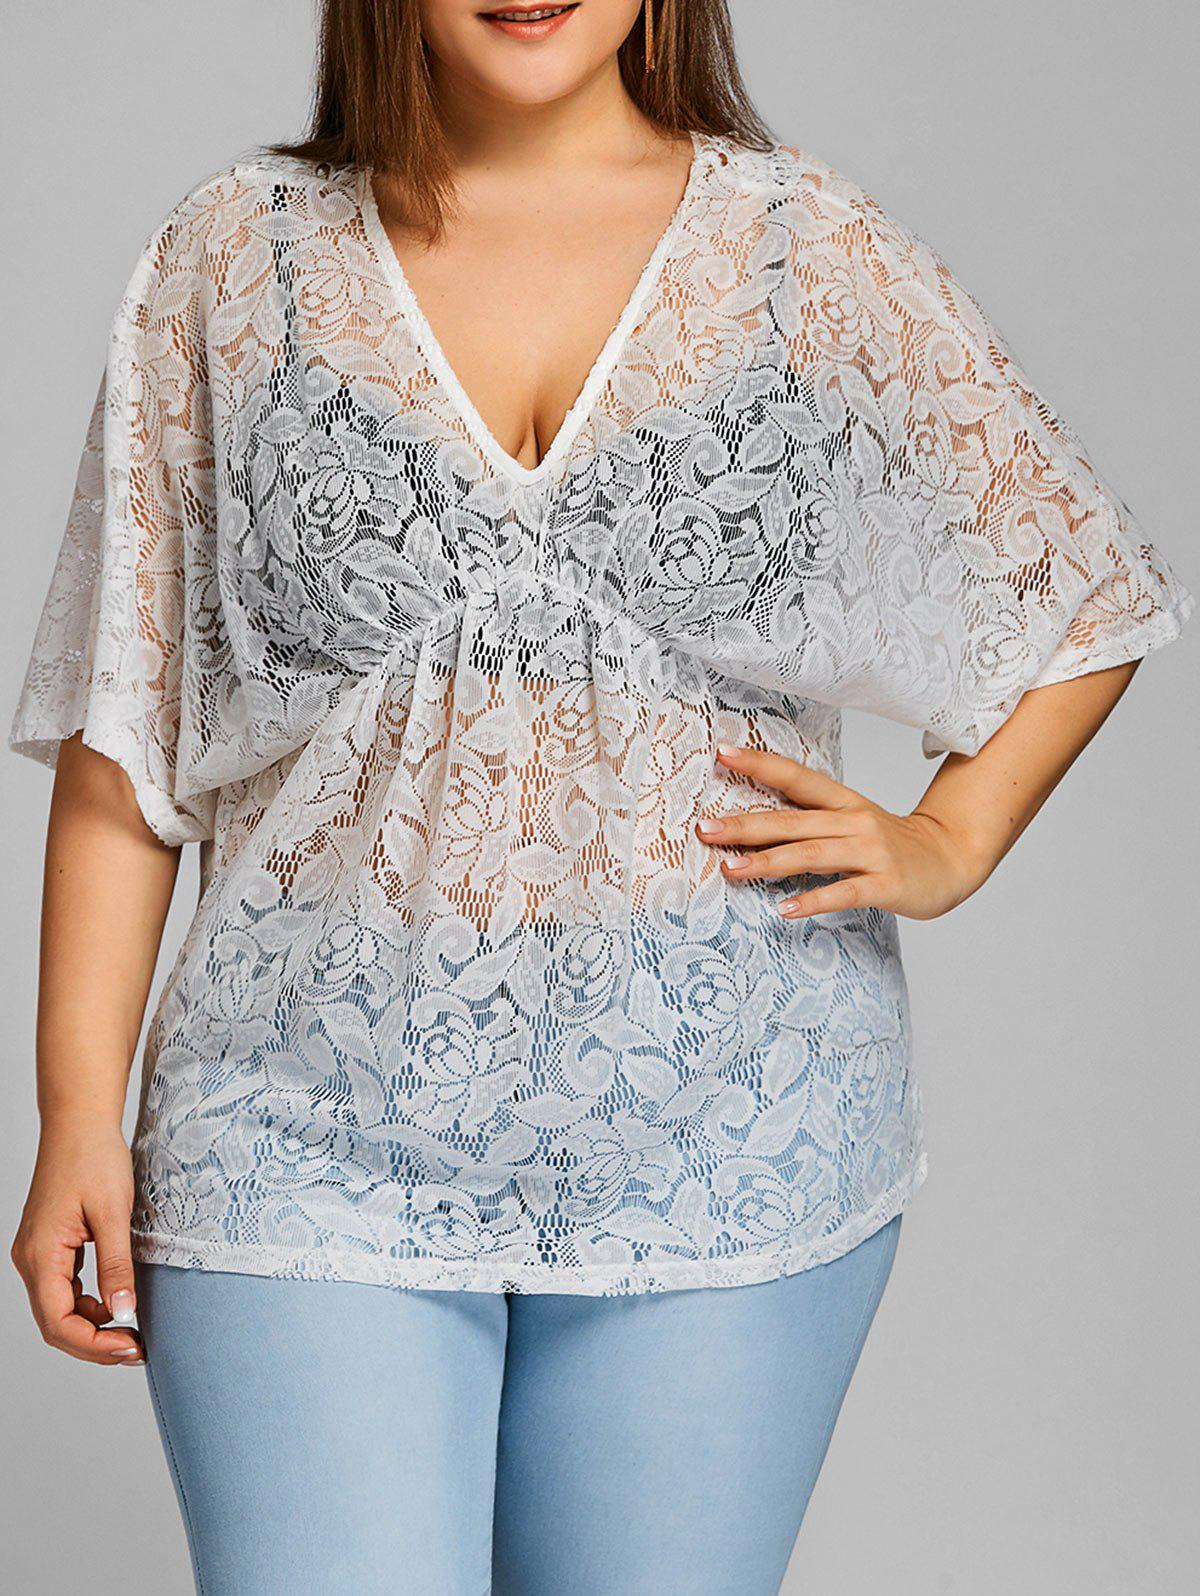 Plus Size Plunging Lace Blouse - WHITE ONE SIZE